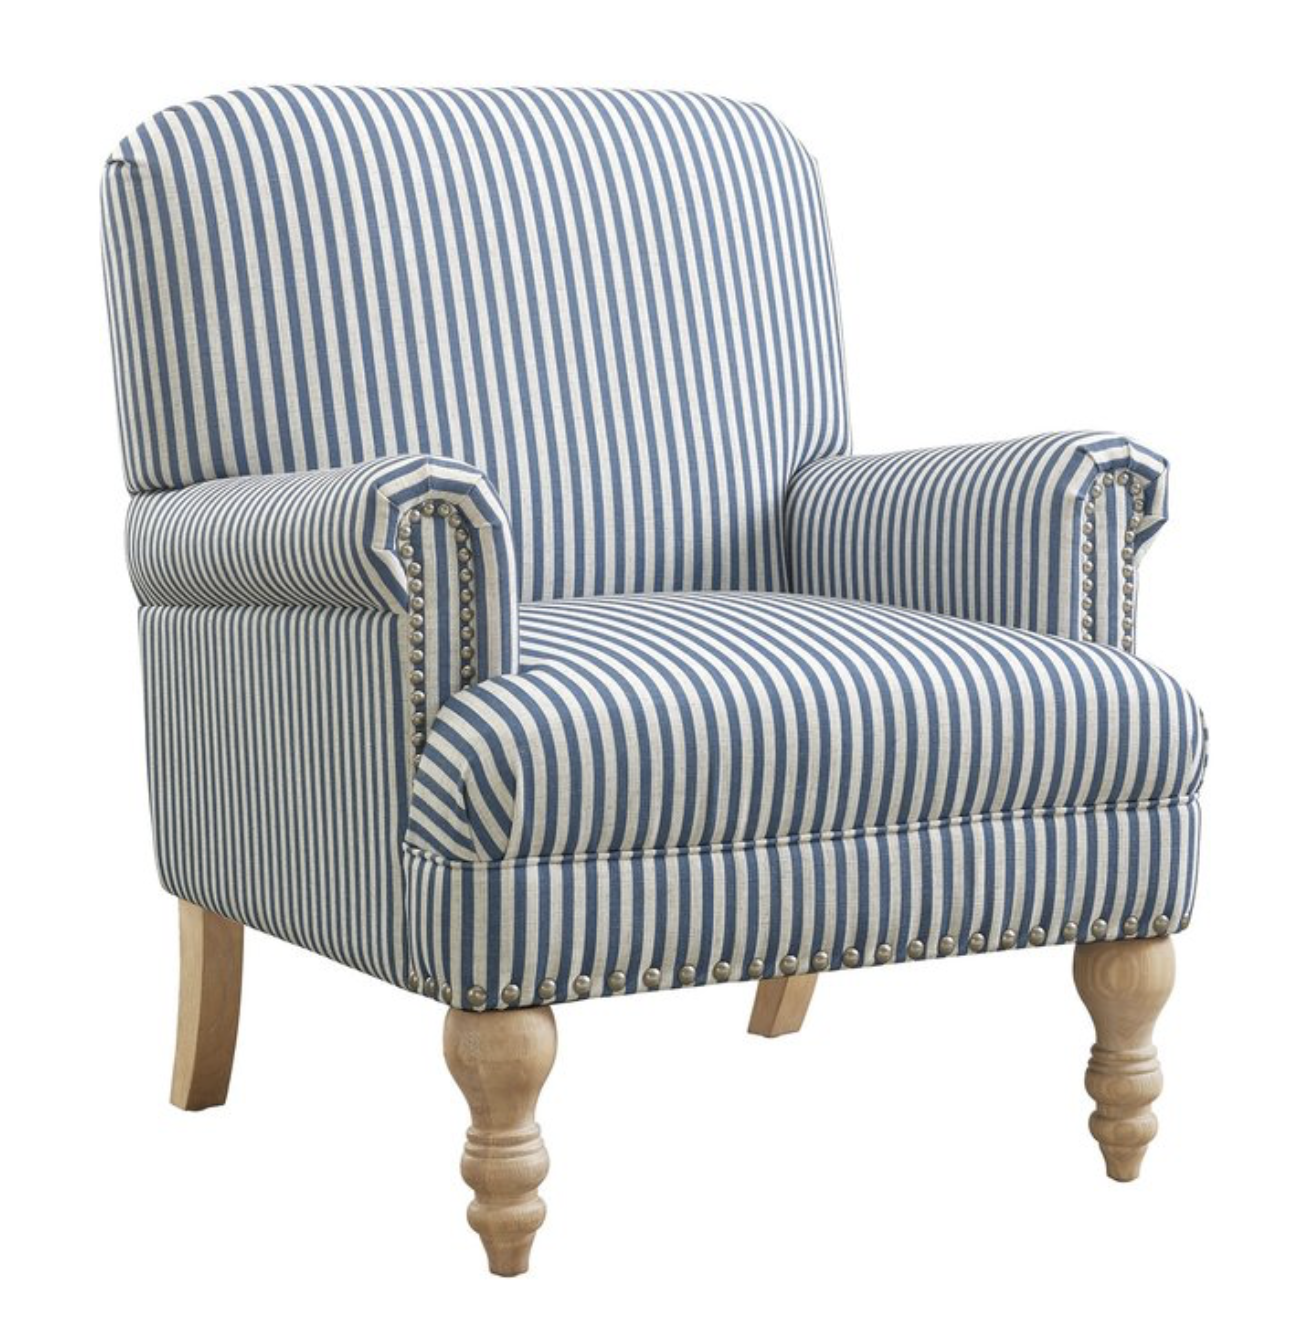 striped armchair blue and white Serena and lily affordable